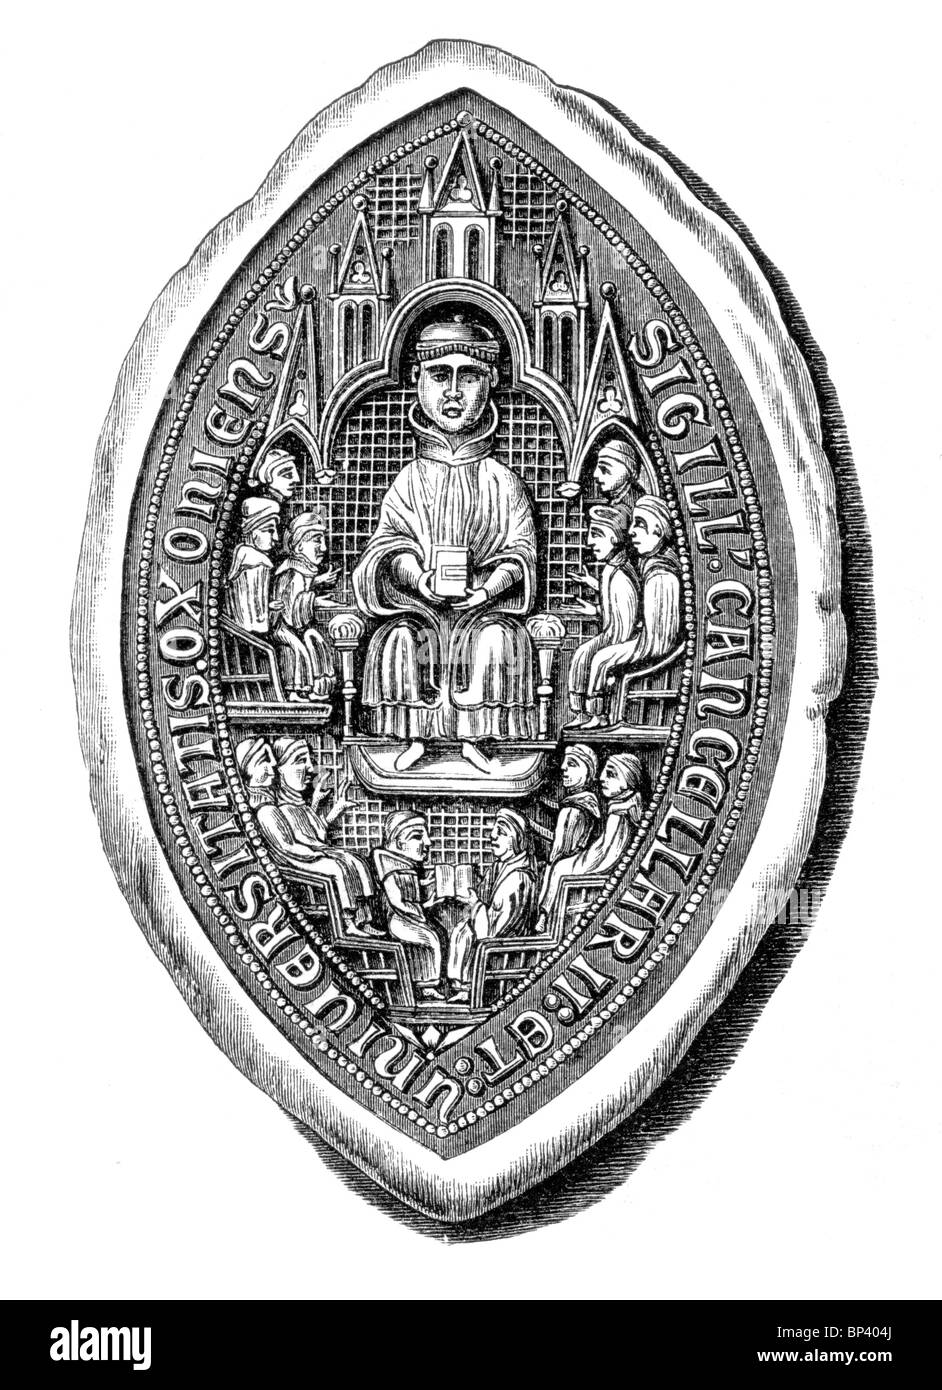 Black and White Illustration; Seal of the University of Oxford; 13th century Stock Photo